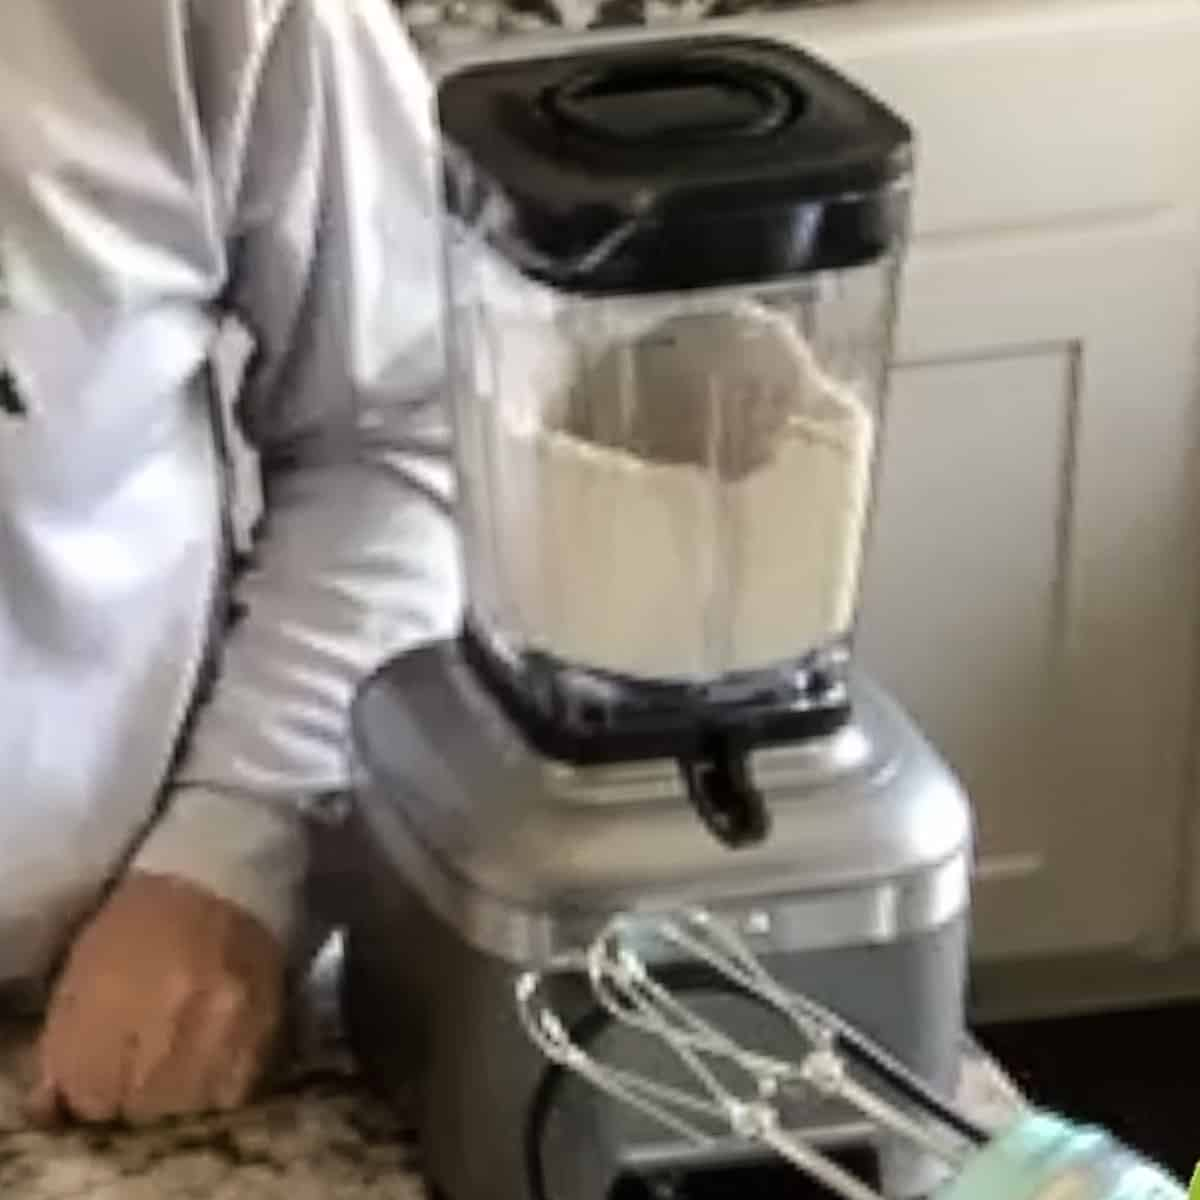 A blender with oatmeal pureed into a flour.